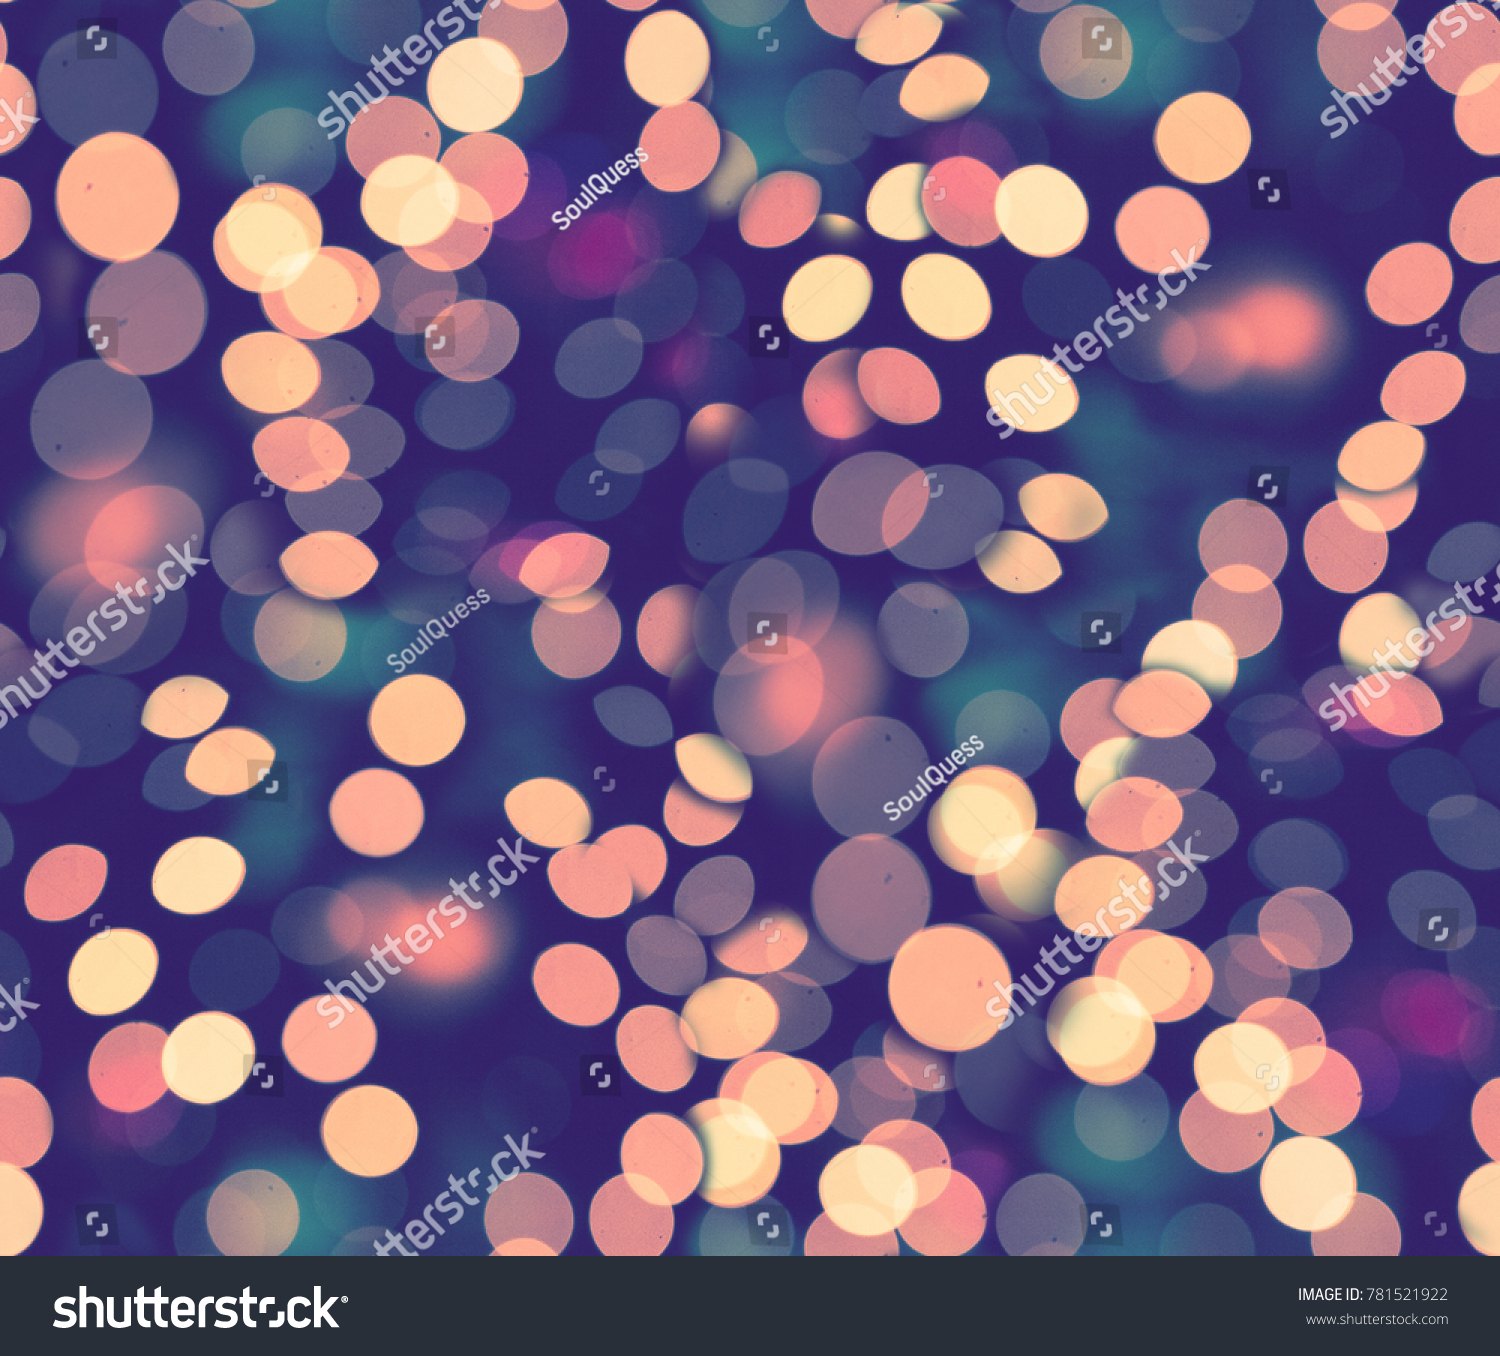 border seamless winter nature squama golden pink fish mermaid bokeh background gold lilac lights and